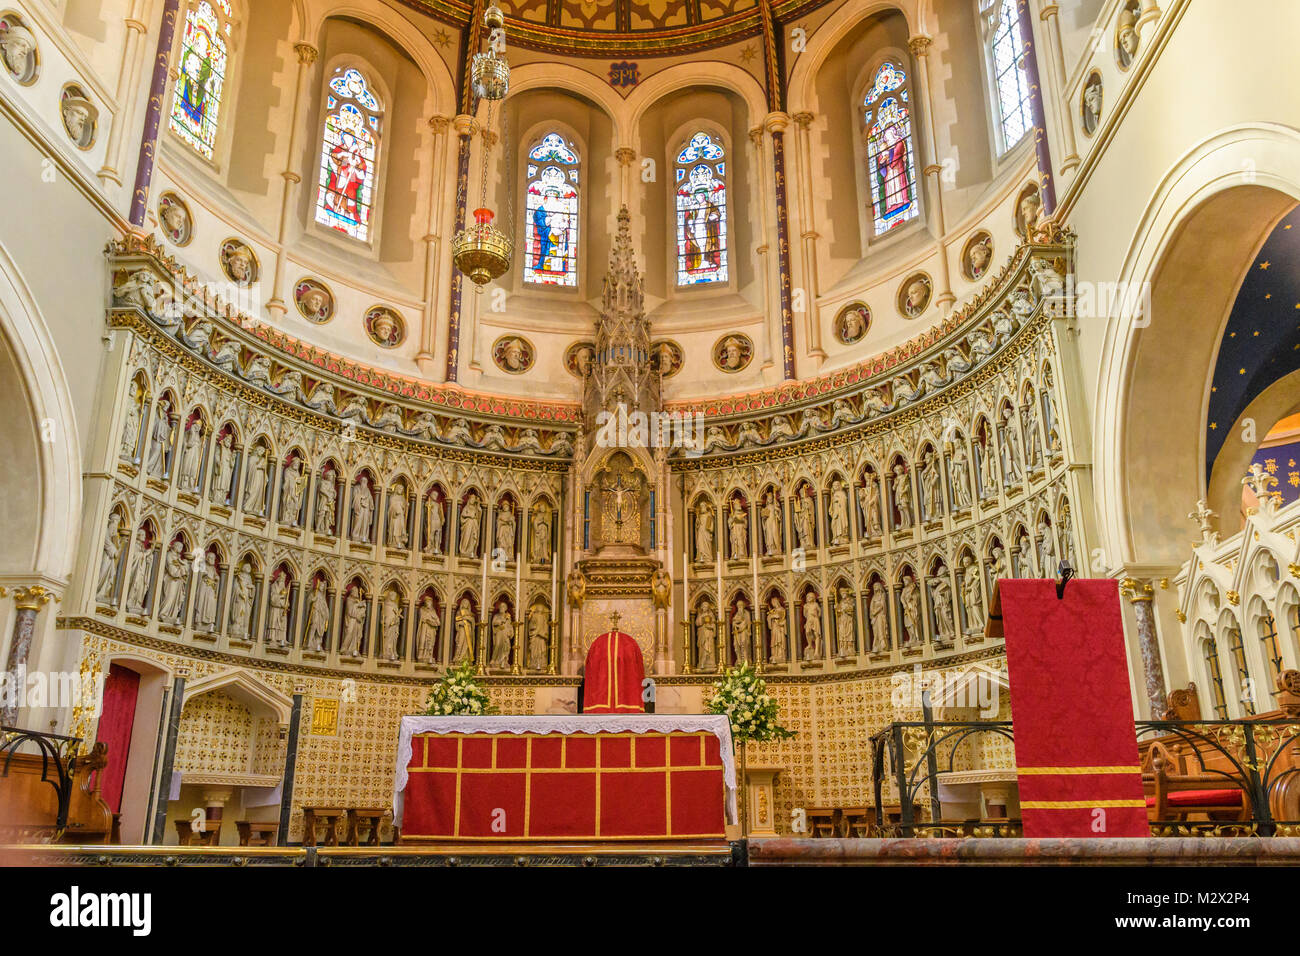 Ornate apse behind the altar on the sanctuary of the Catholic church of St Aloysius (run by the Oratorian priests) - Stock Image